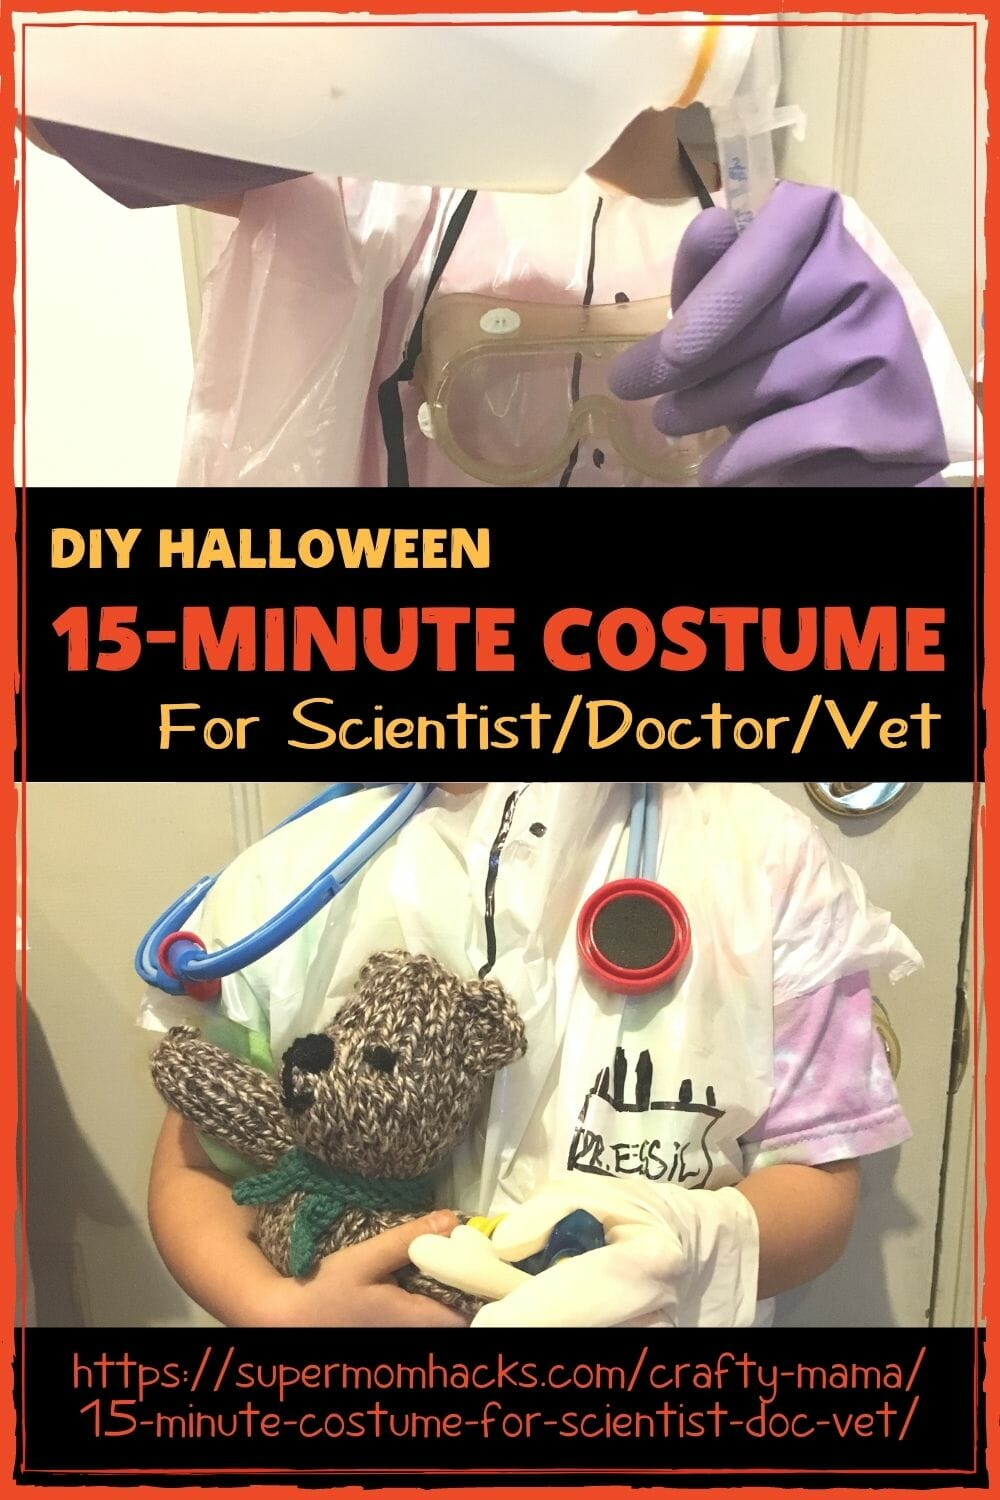 Want a Halloween outfit that takes almost no time to make and costs ZERO? This 15-minute scientist/doctor/vet costume is genius.